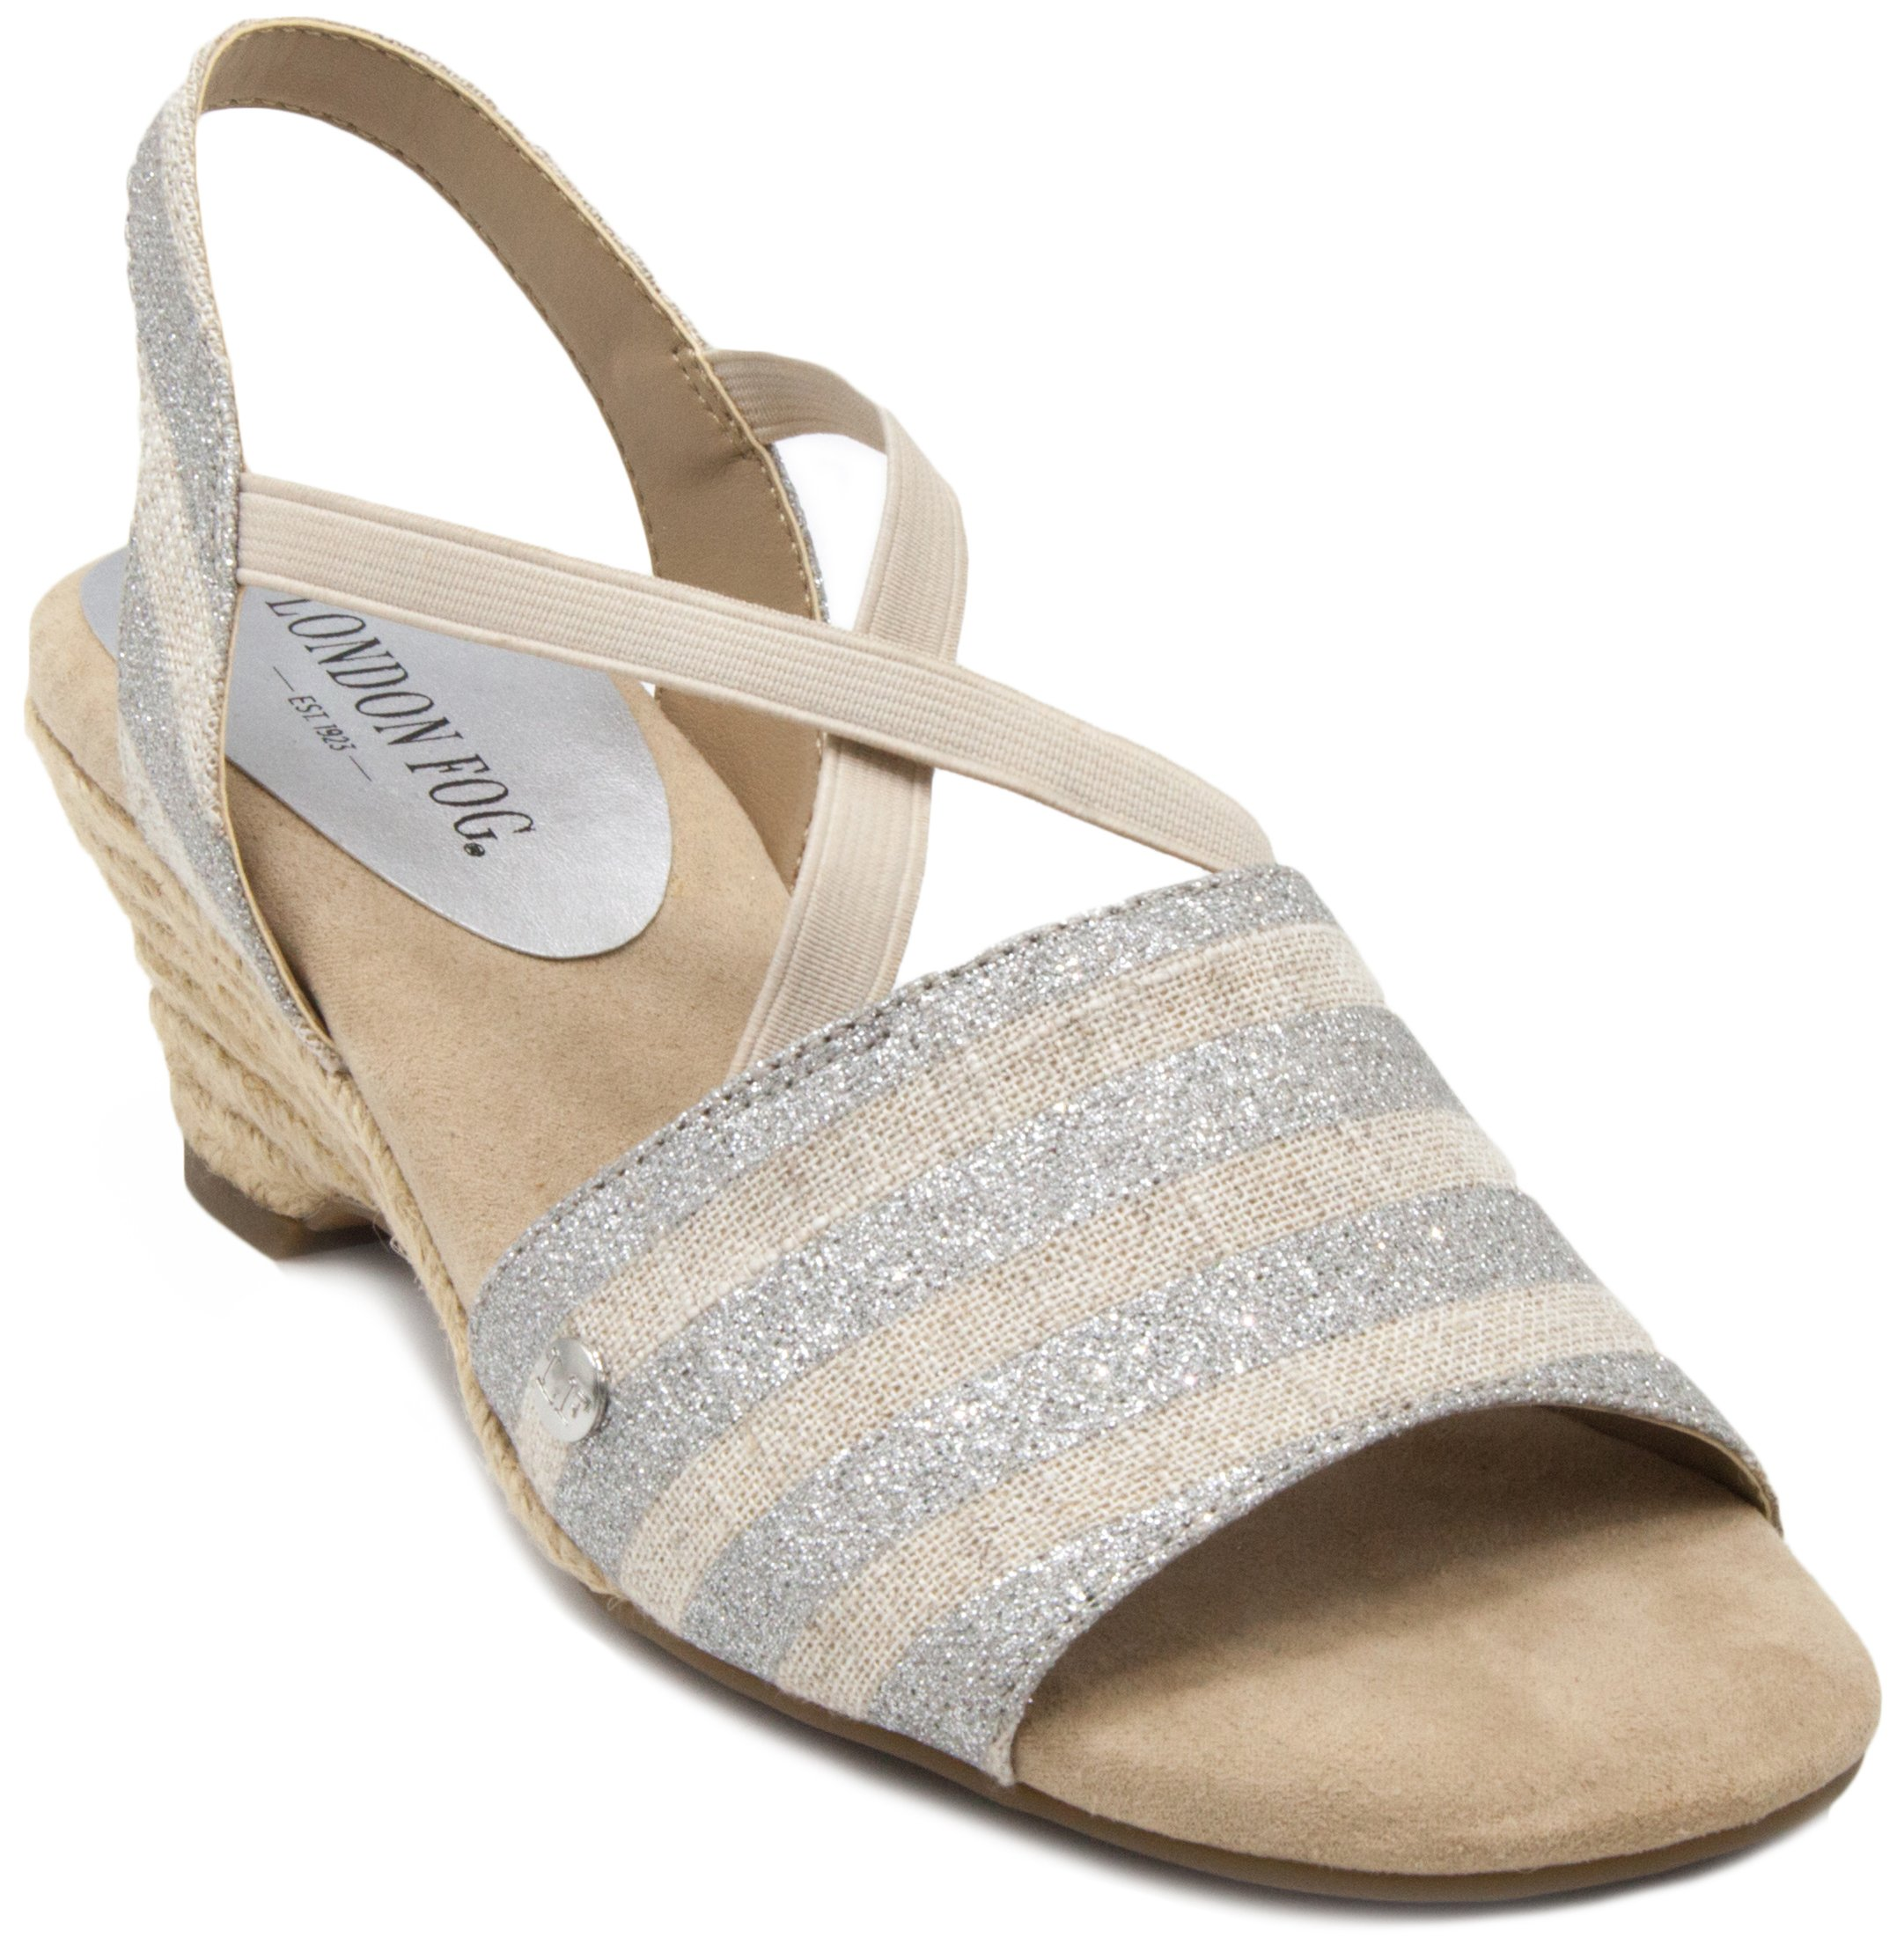 London Fog Womens Kirby Open Toe Espadrille Wedge Sandals Silver Stripe 7 M US